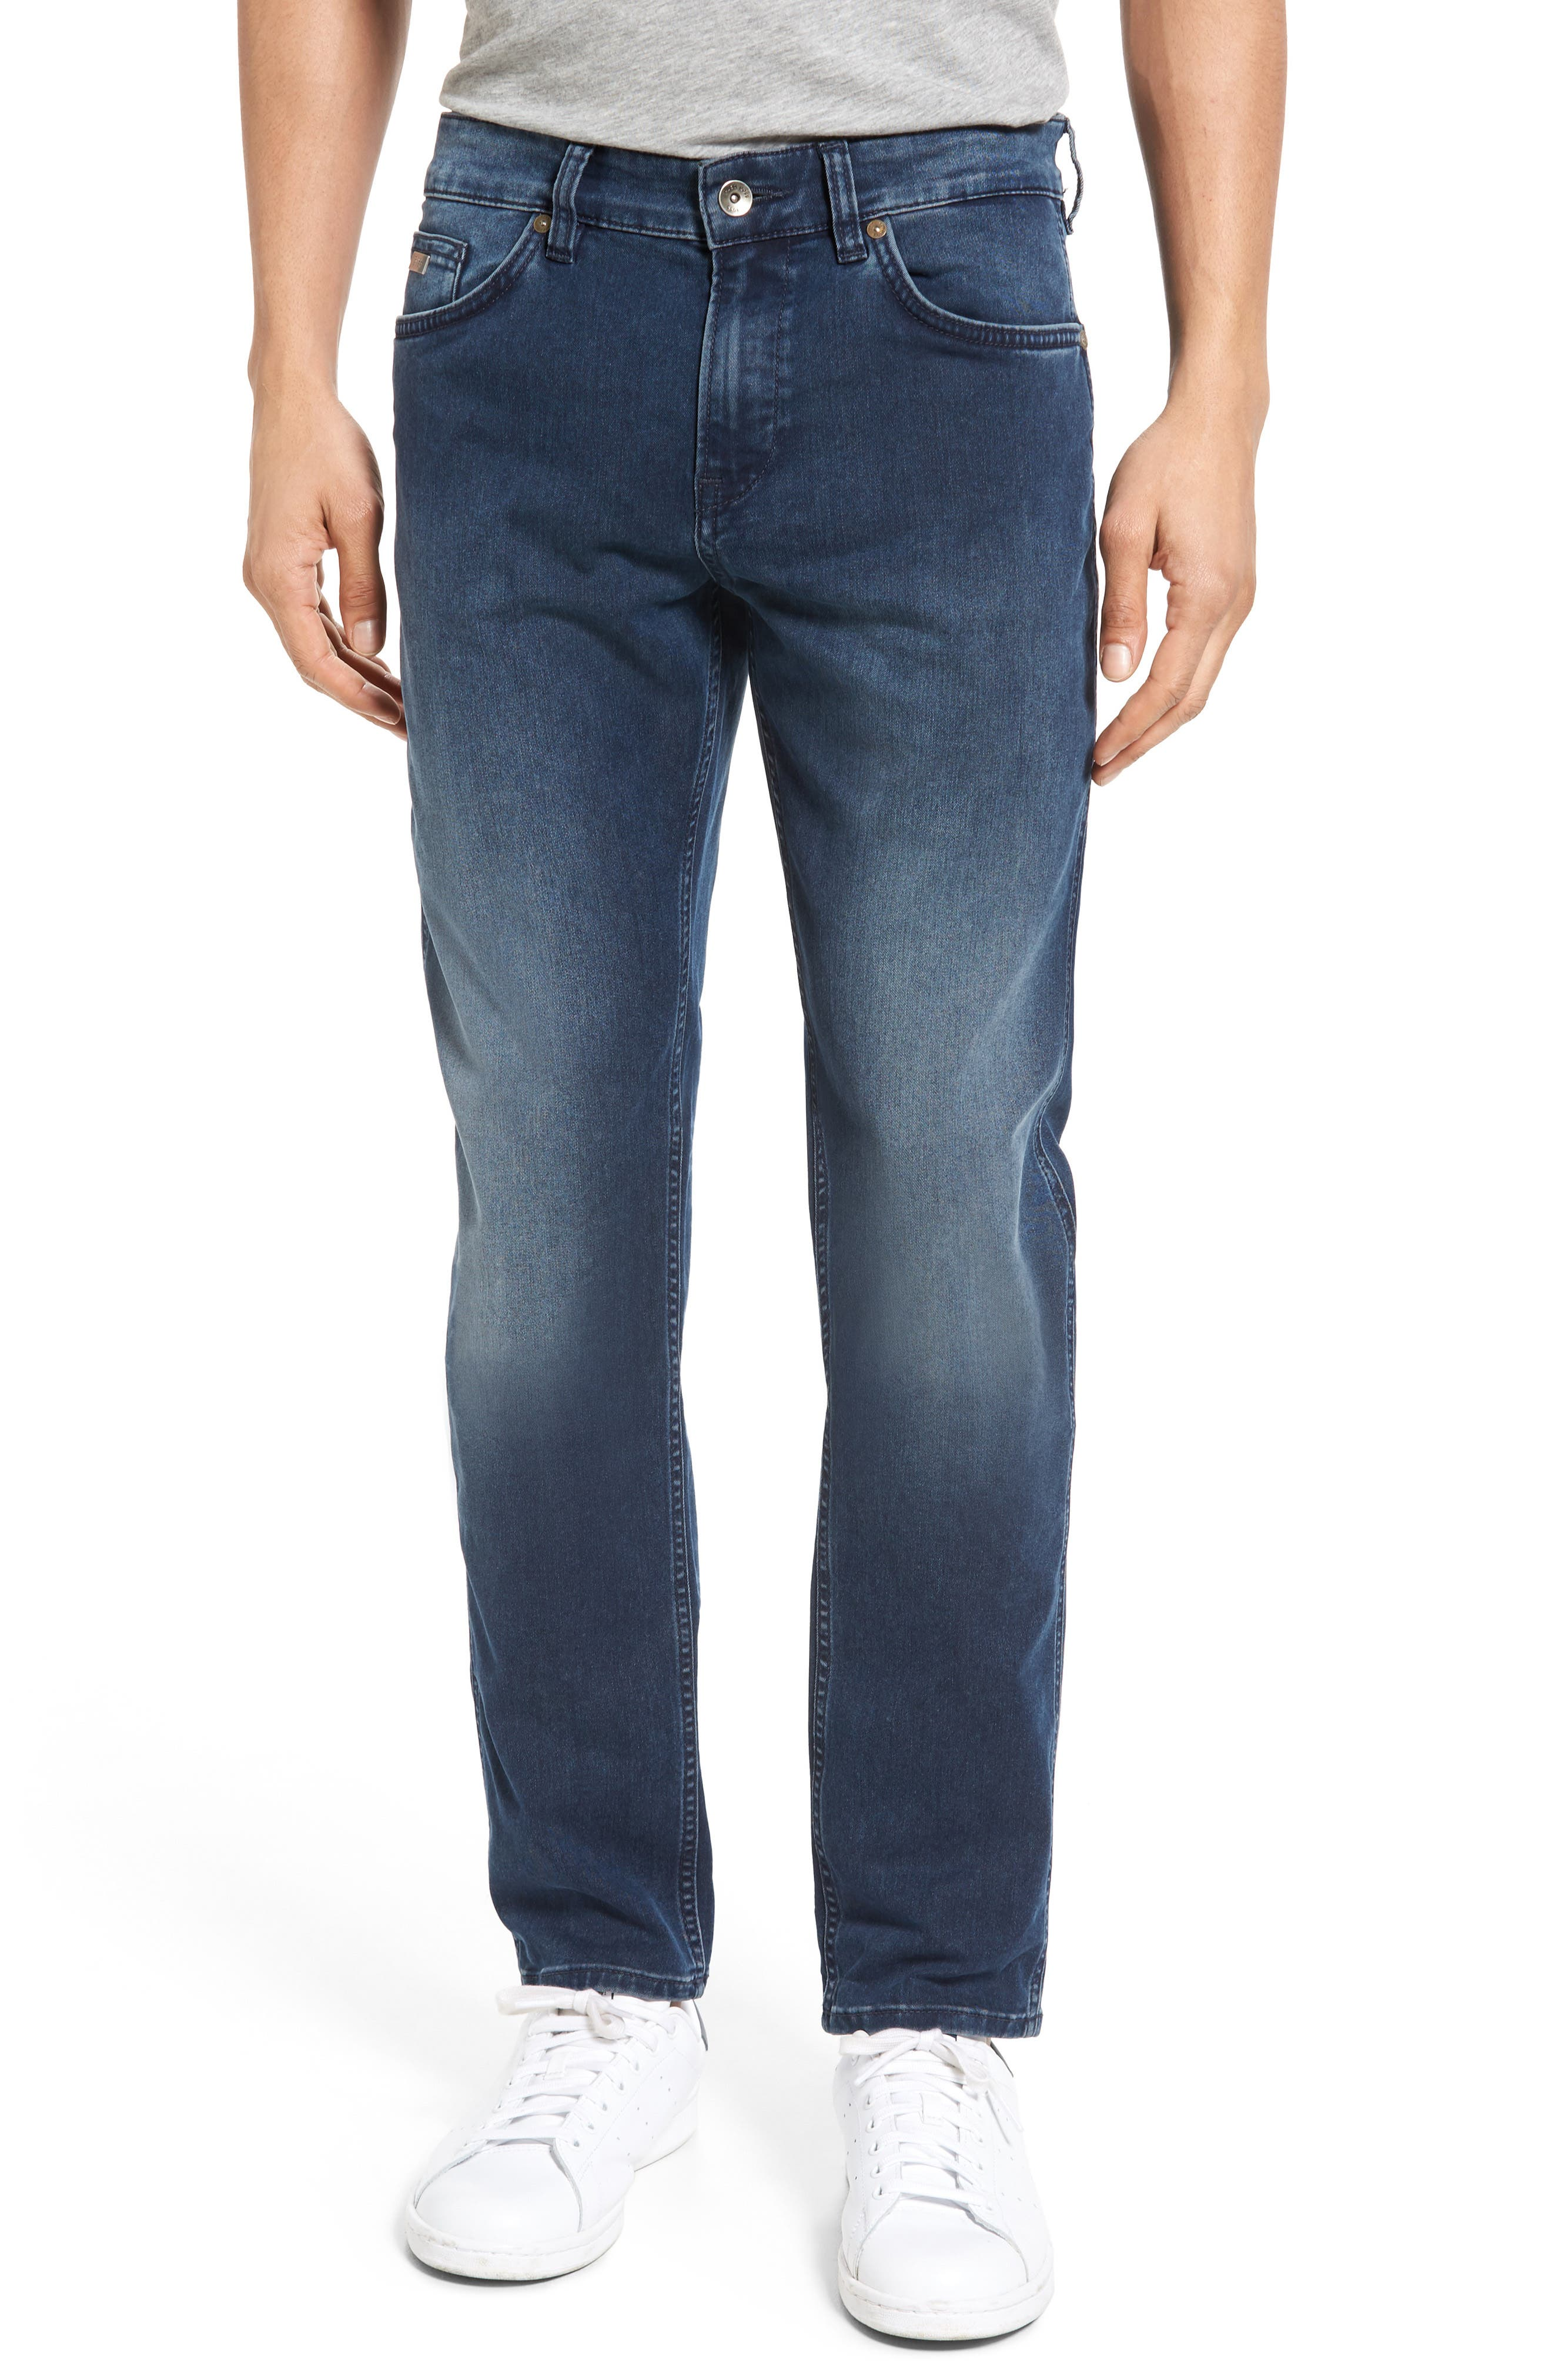 Delaware Slim Fit Jeans,                             Main thumbnail 1, color,                             Navy